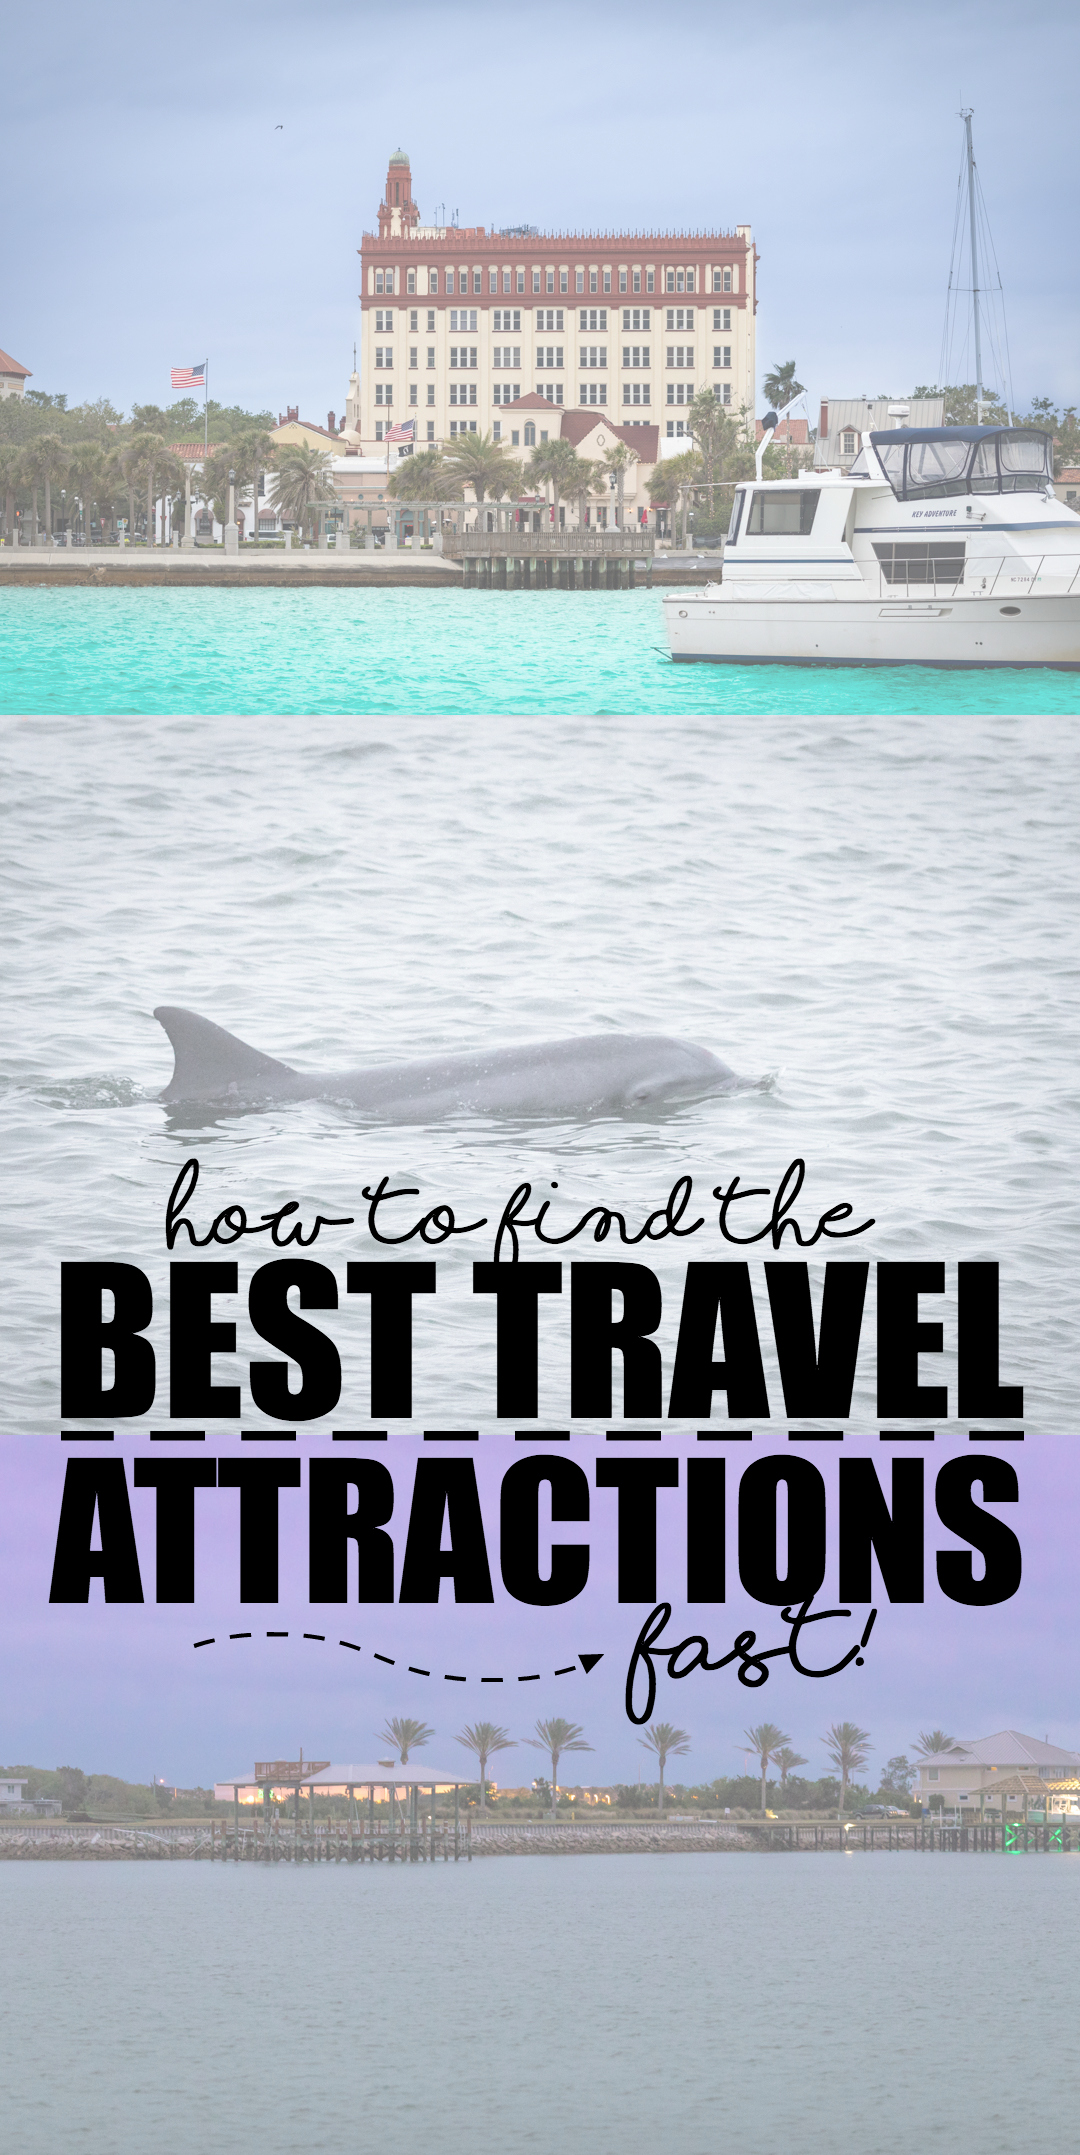 How to Find the Best Travel Attractions Fast for Any Popular Travel Destination